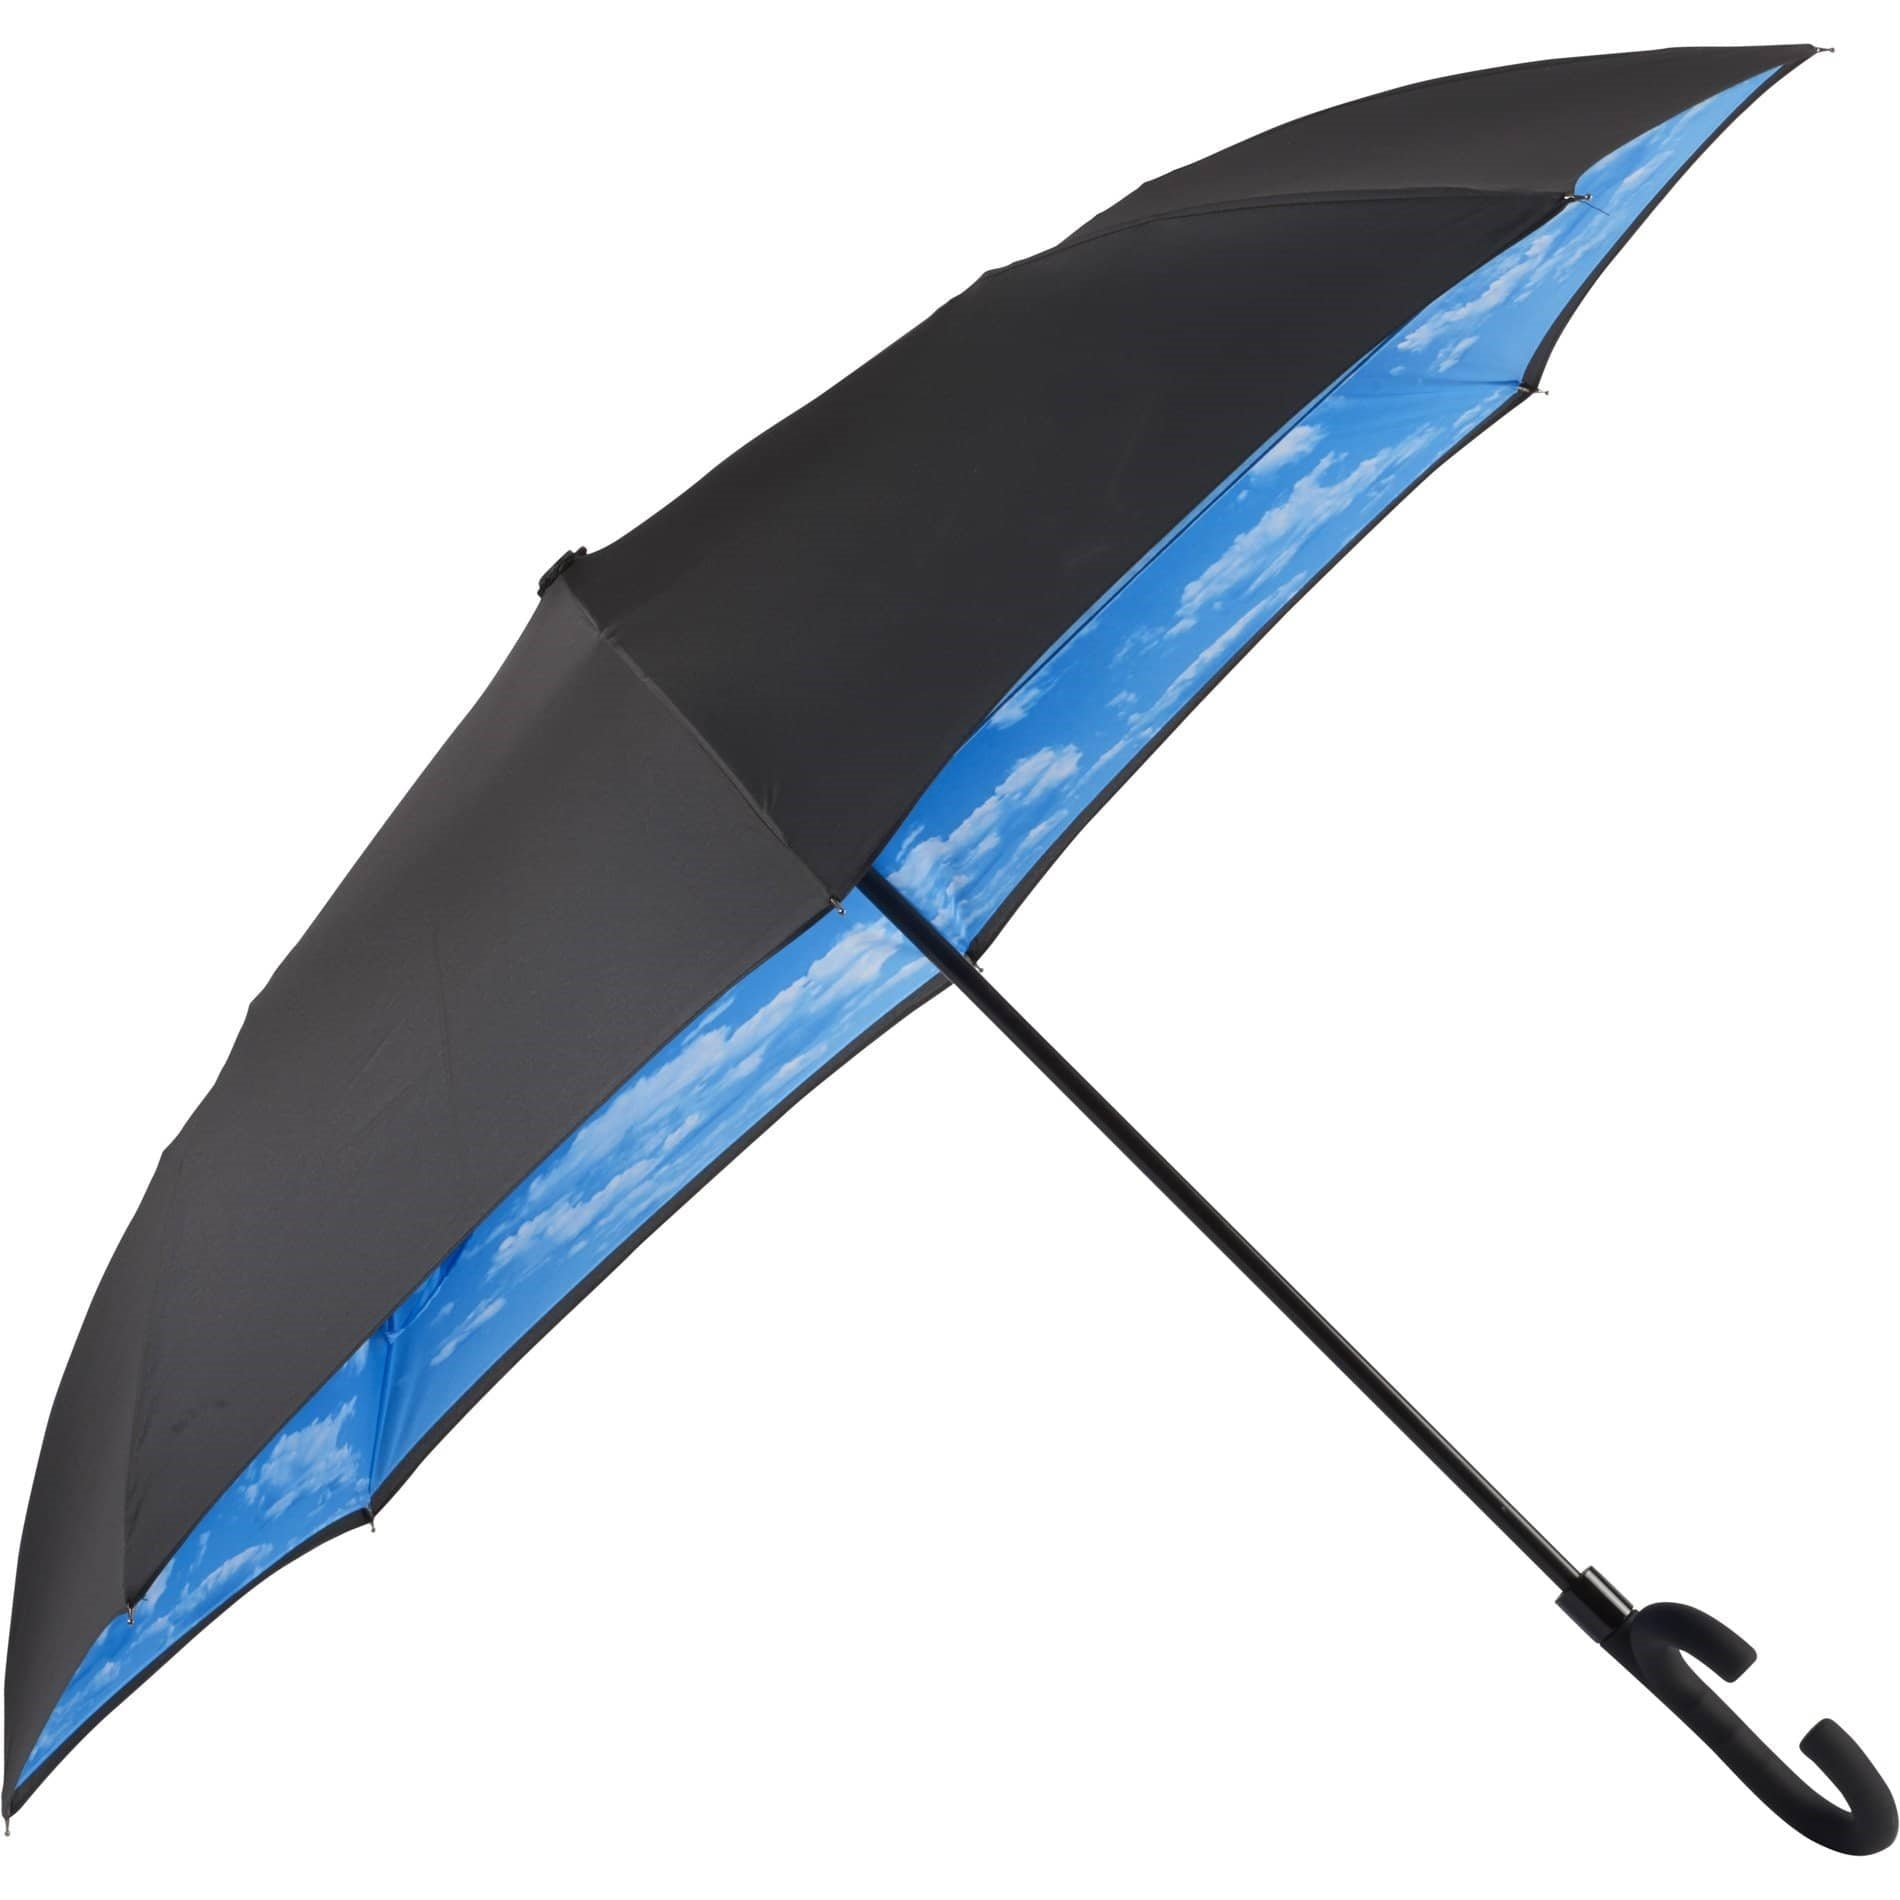 Inverted Umbrella with Unique Handle